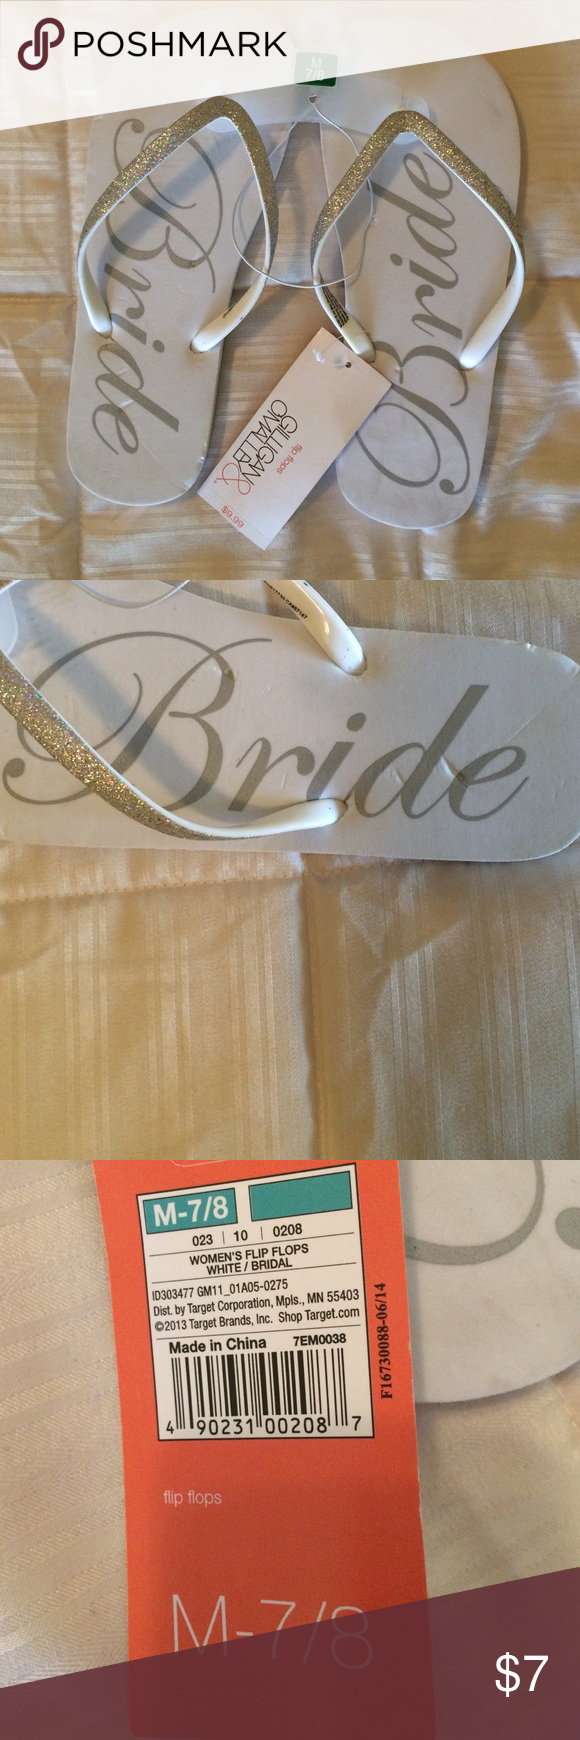 a79e62fc5 NWT Target bridal flip flops Cute flip flops for a bride to be! White with  sparkly accent and  Bride  written on the bottom. Never worn!